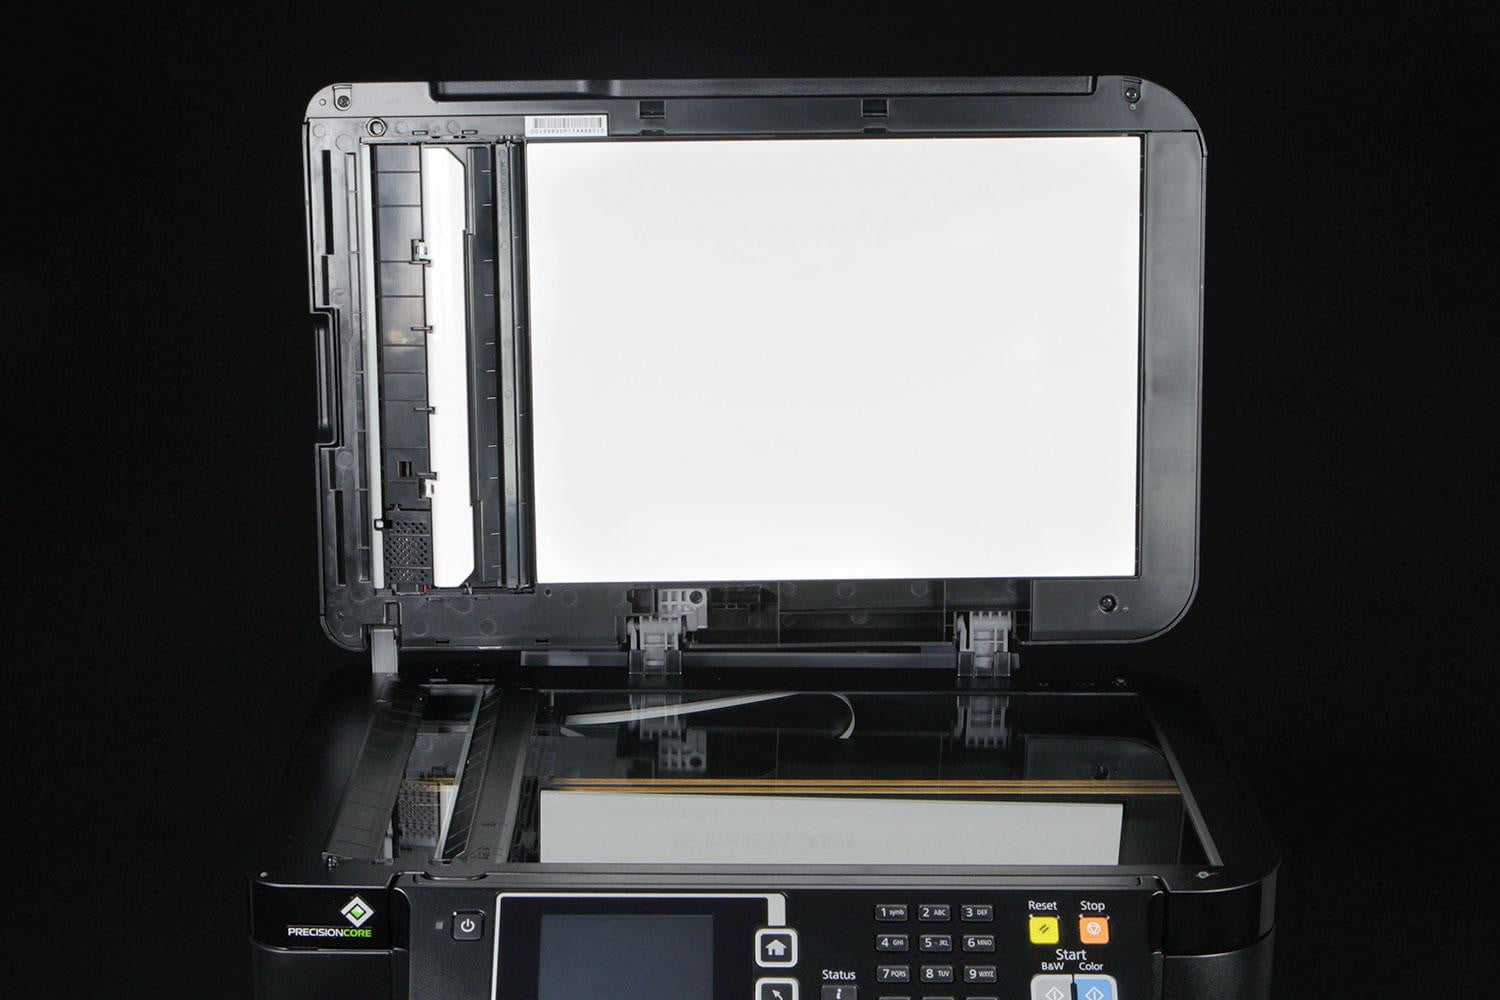 EPSON WF 3620 SCANNER WINDOWS 7 X64 DRIVER DOWNLOAD